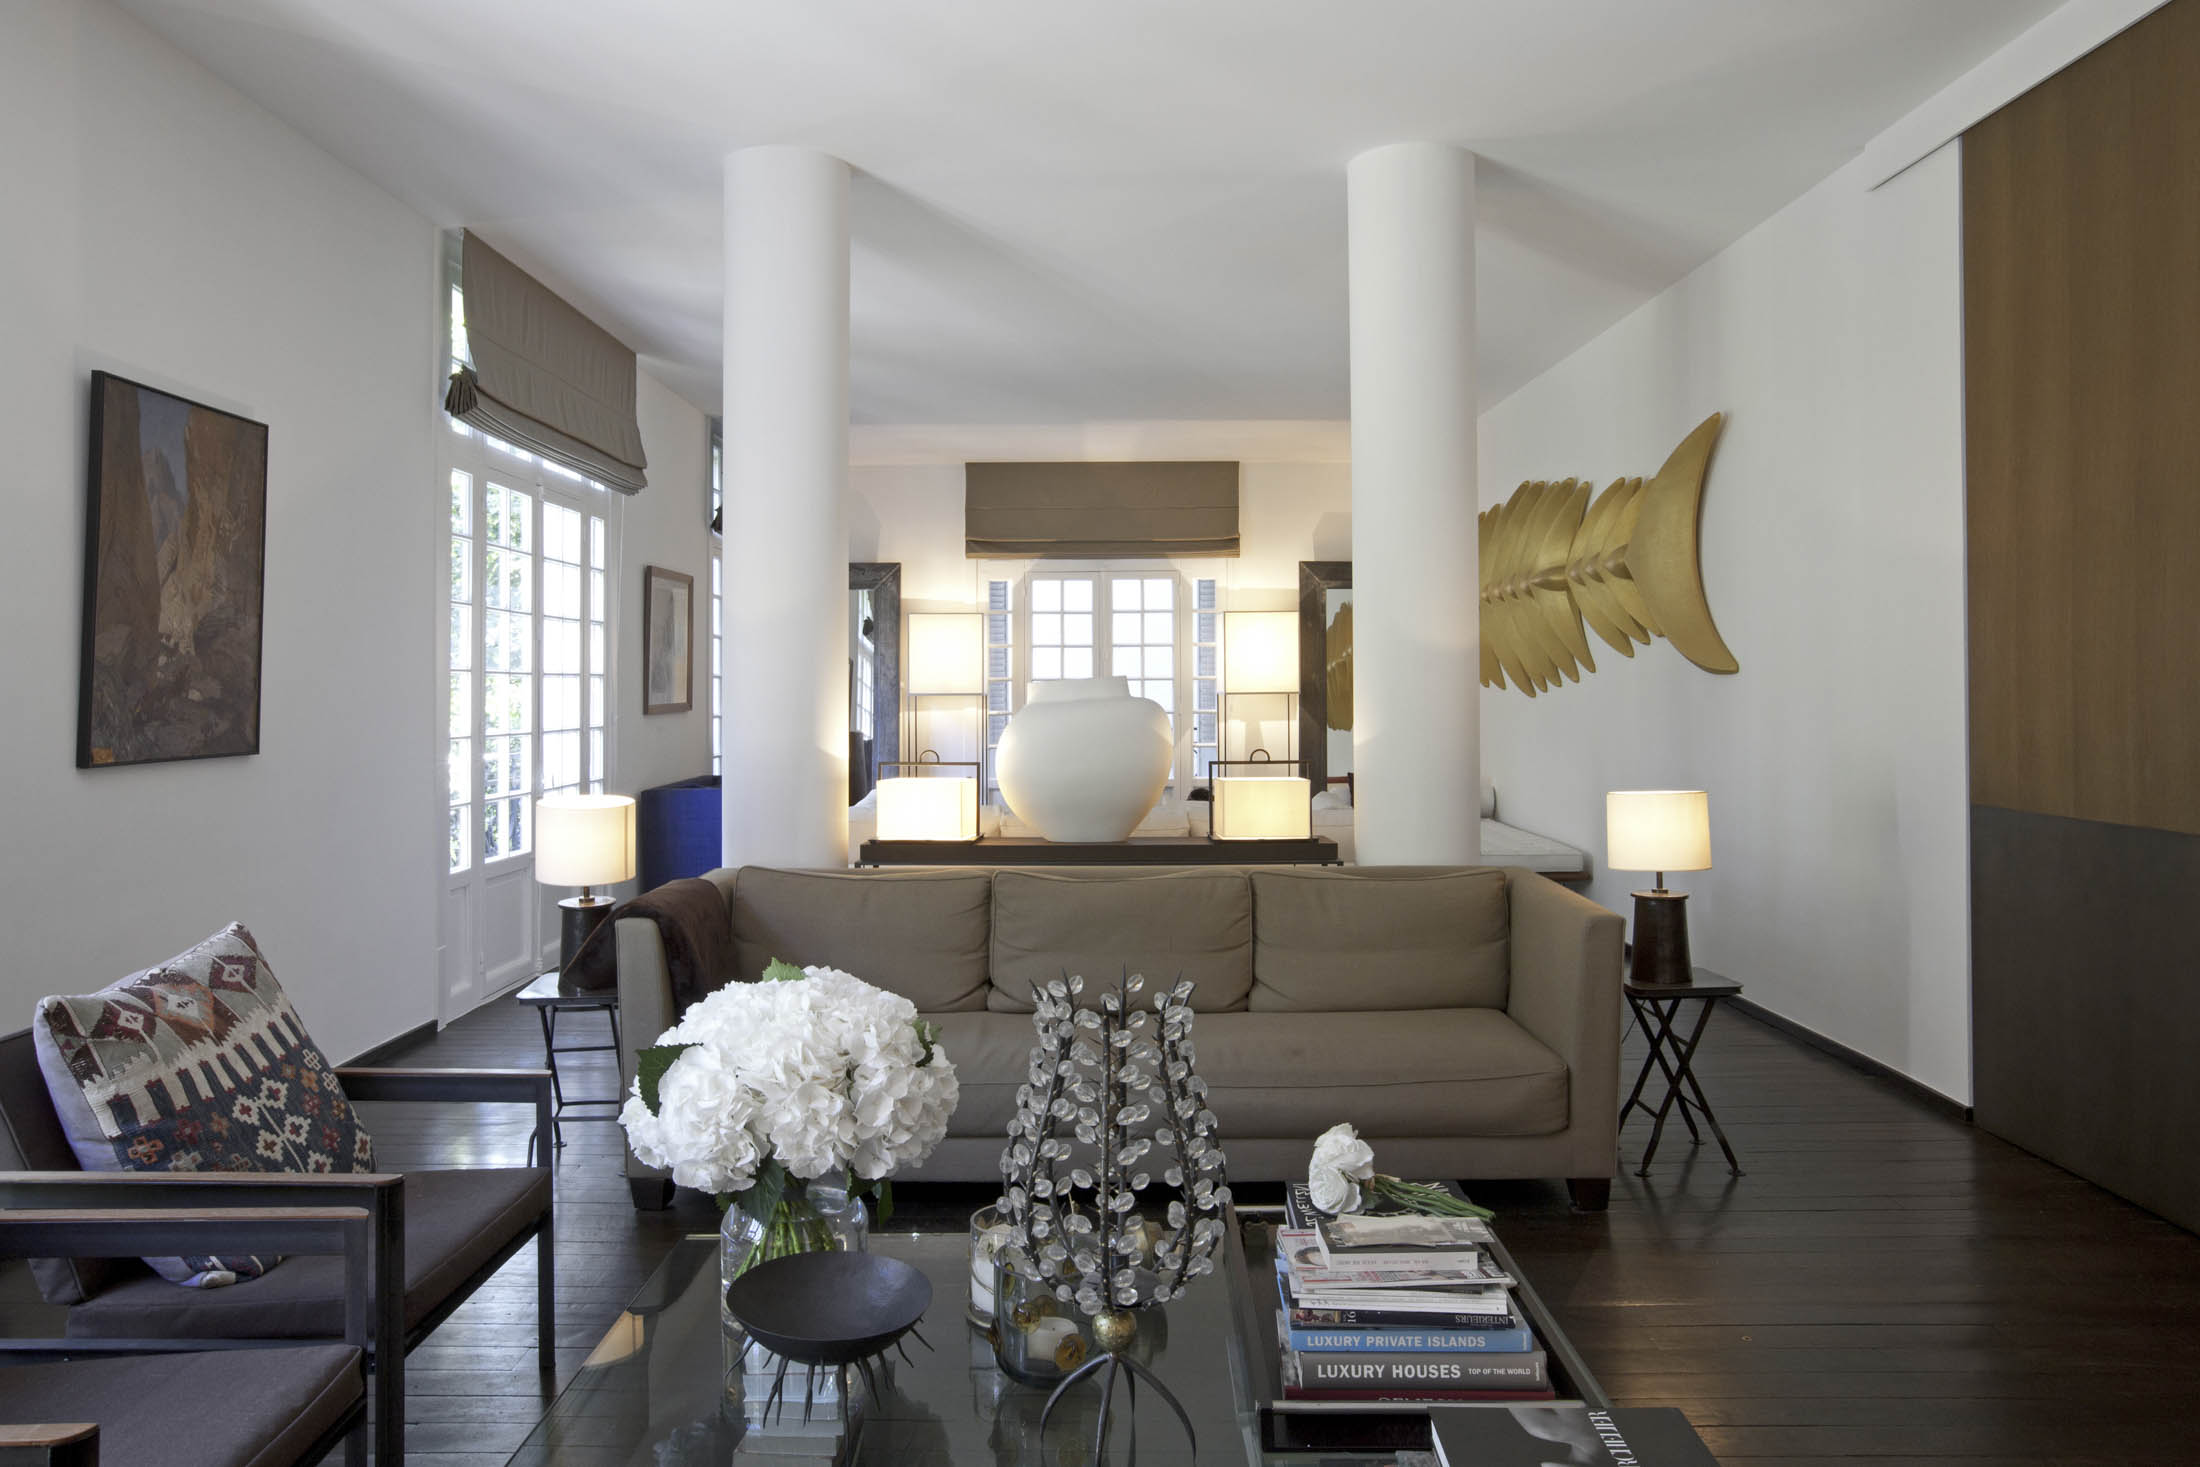 The living room's eclectic mix of furniture and objects includes a gold fish skeleton.